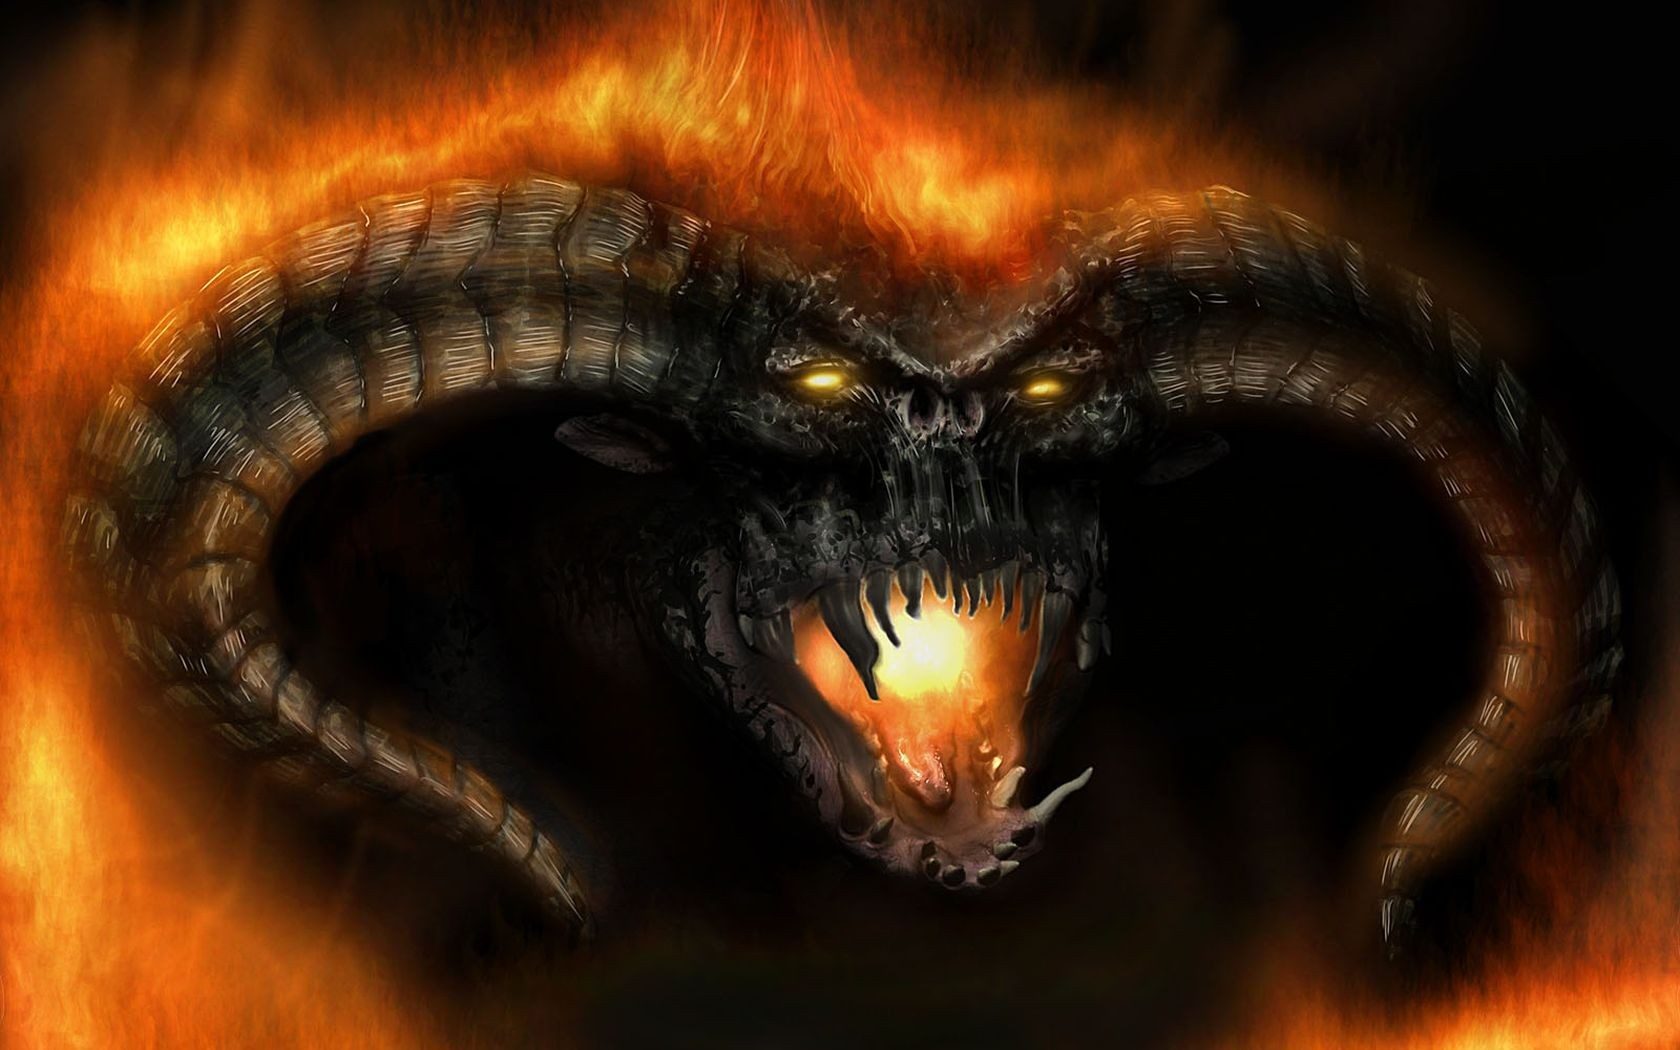 image - balrog-demons-the-lord-of-the-rings-fantasy-art-devils-hd